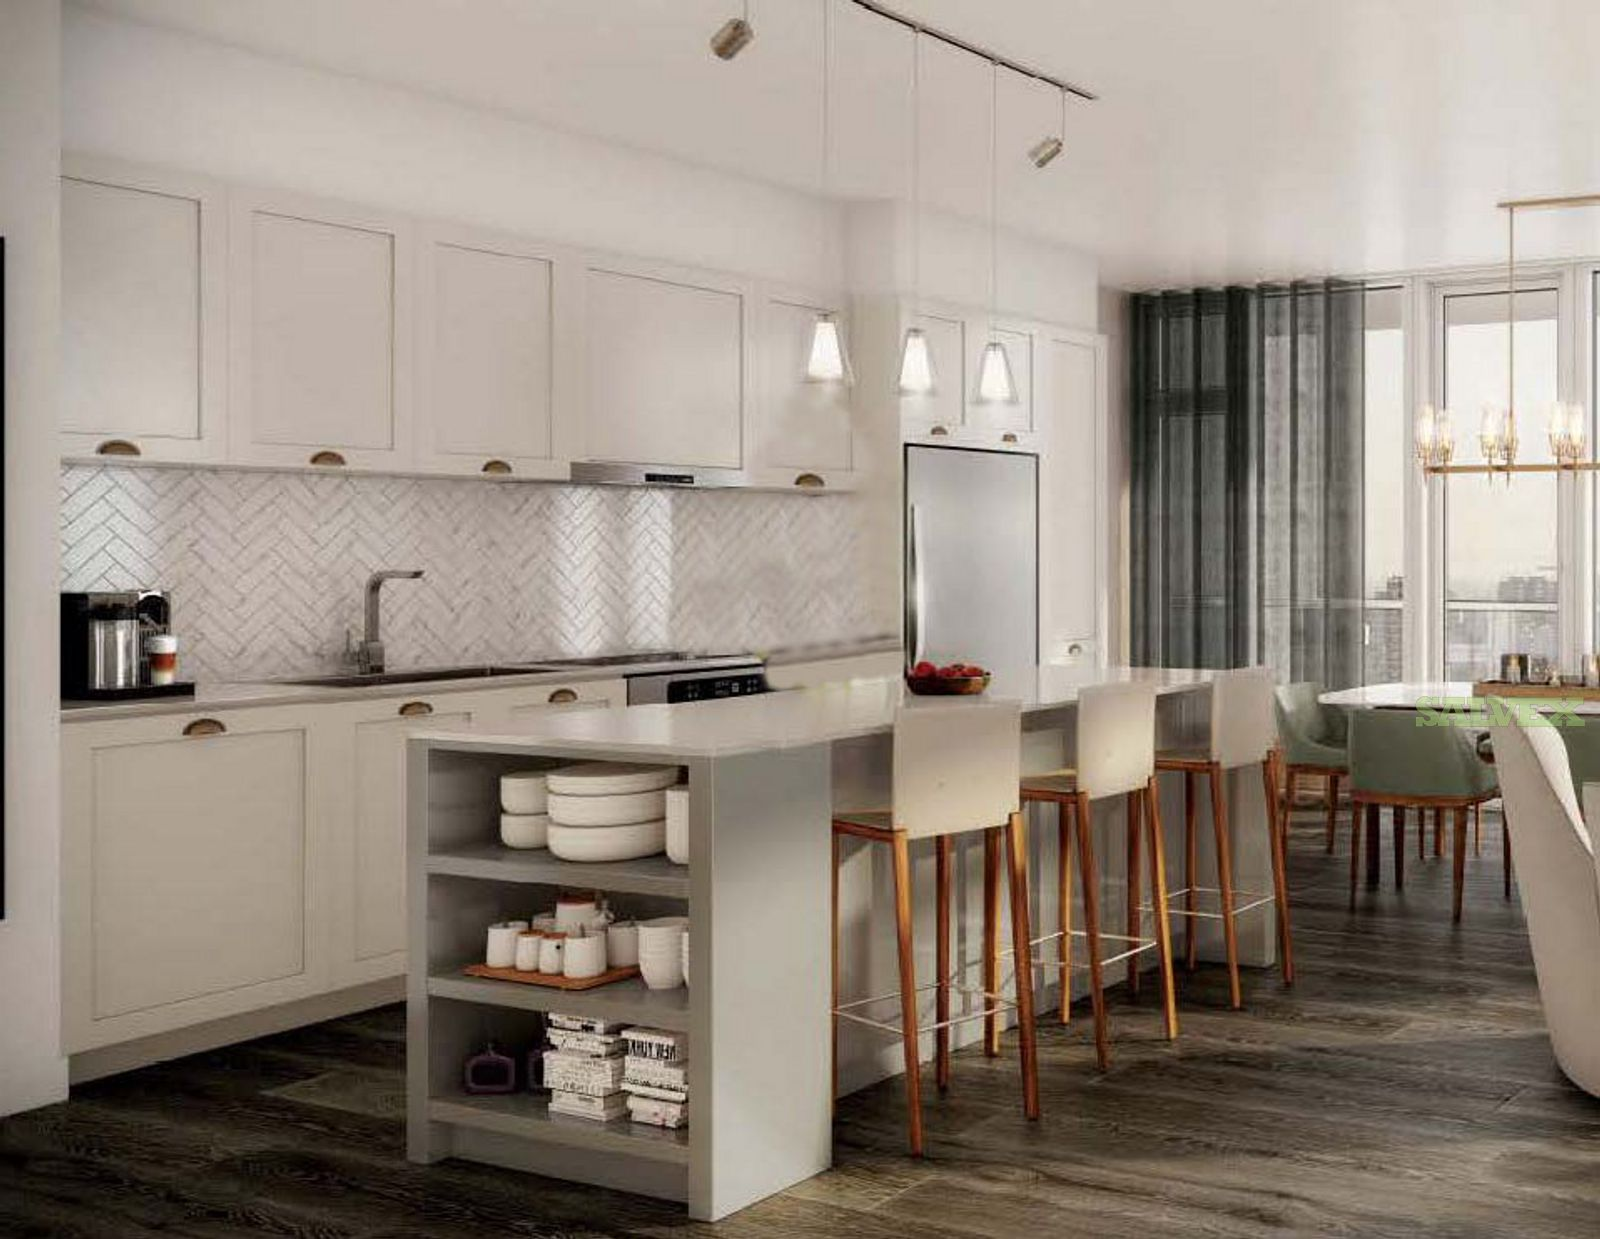 Kitchen and Bath Cabinets (5 Containers) - in New Jersey